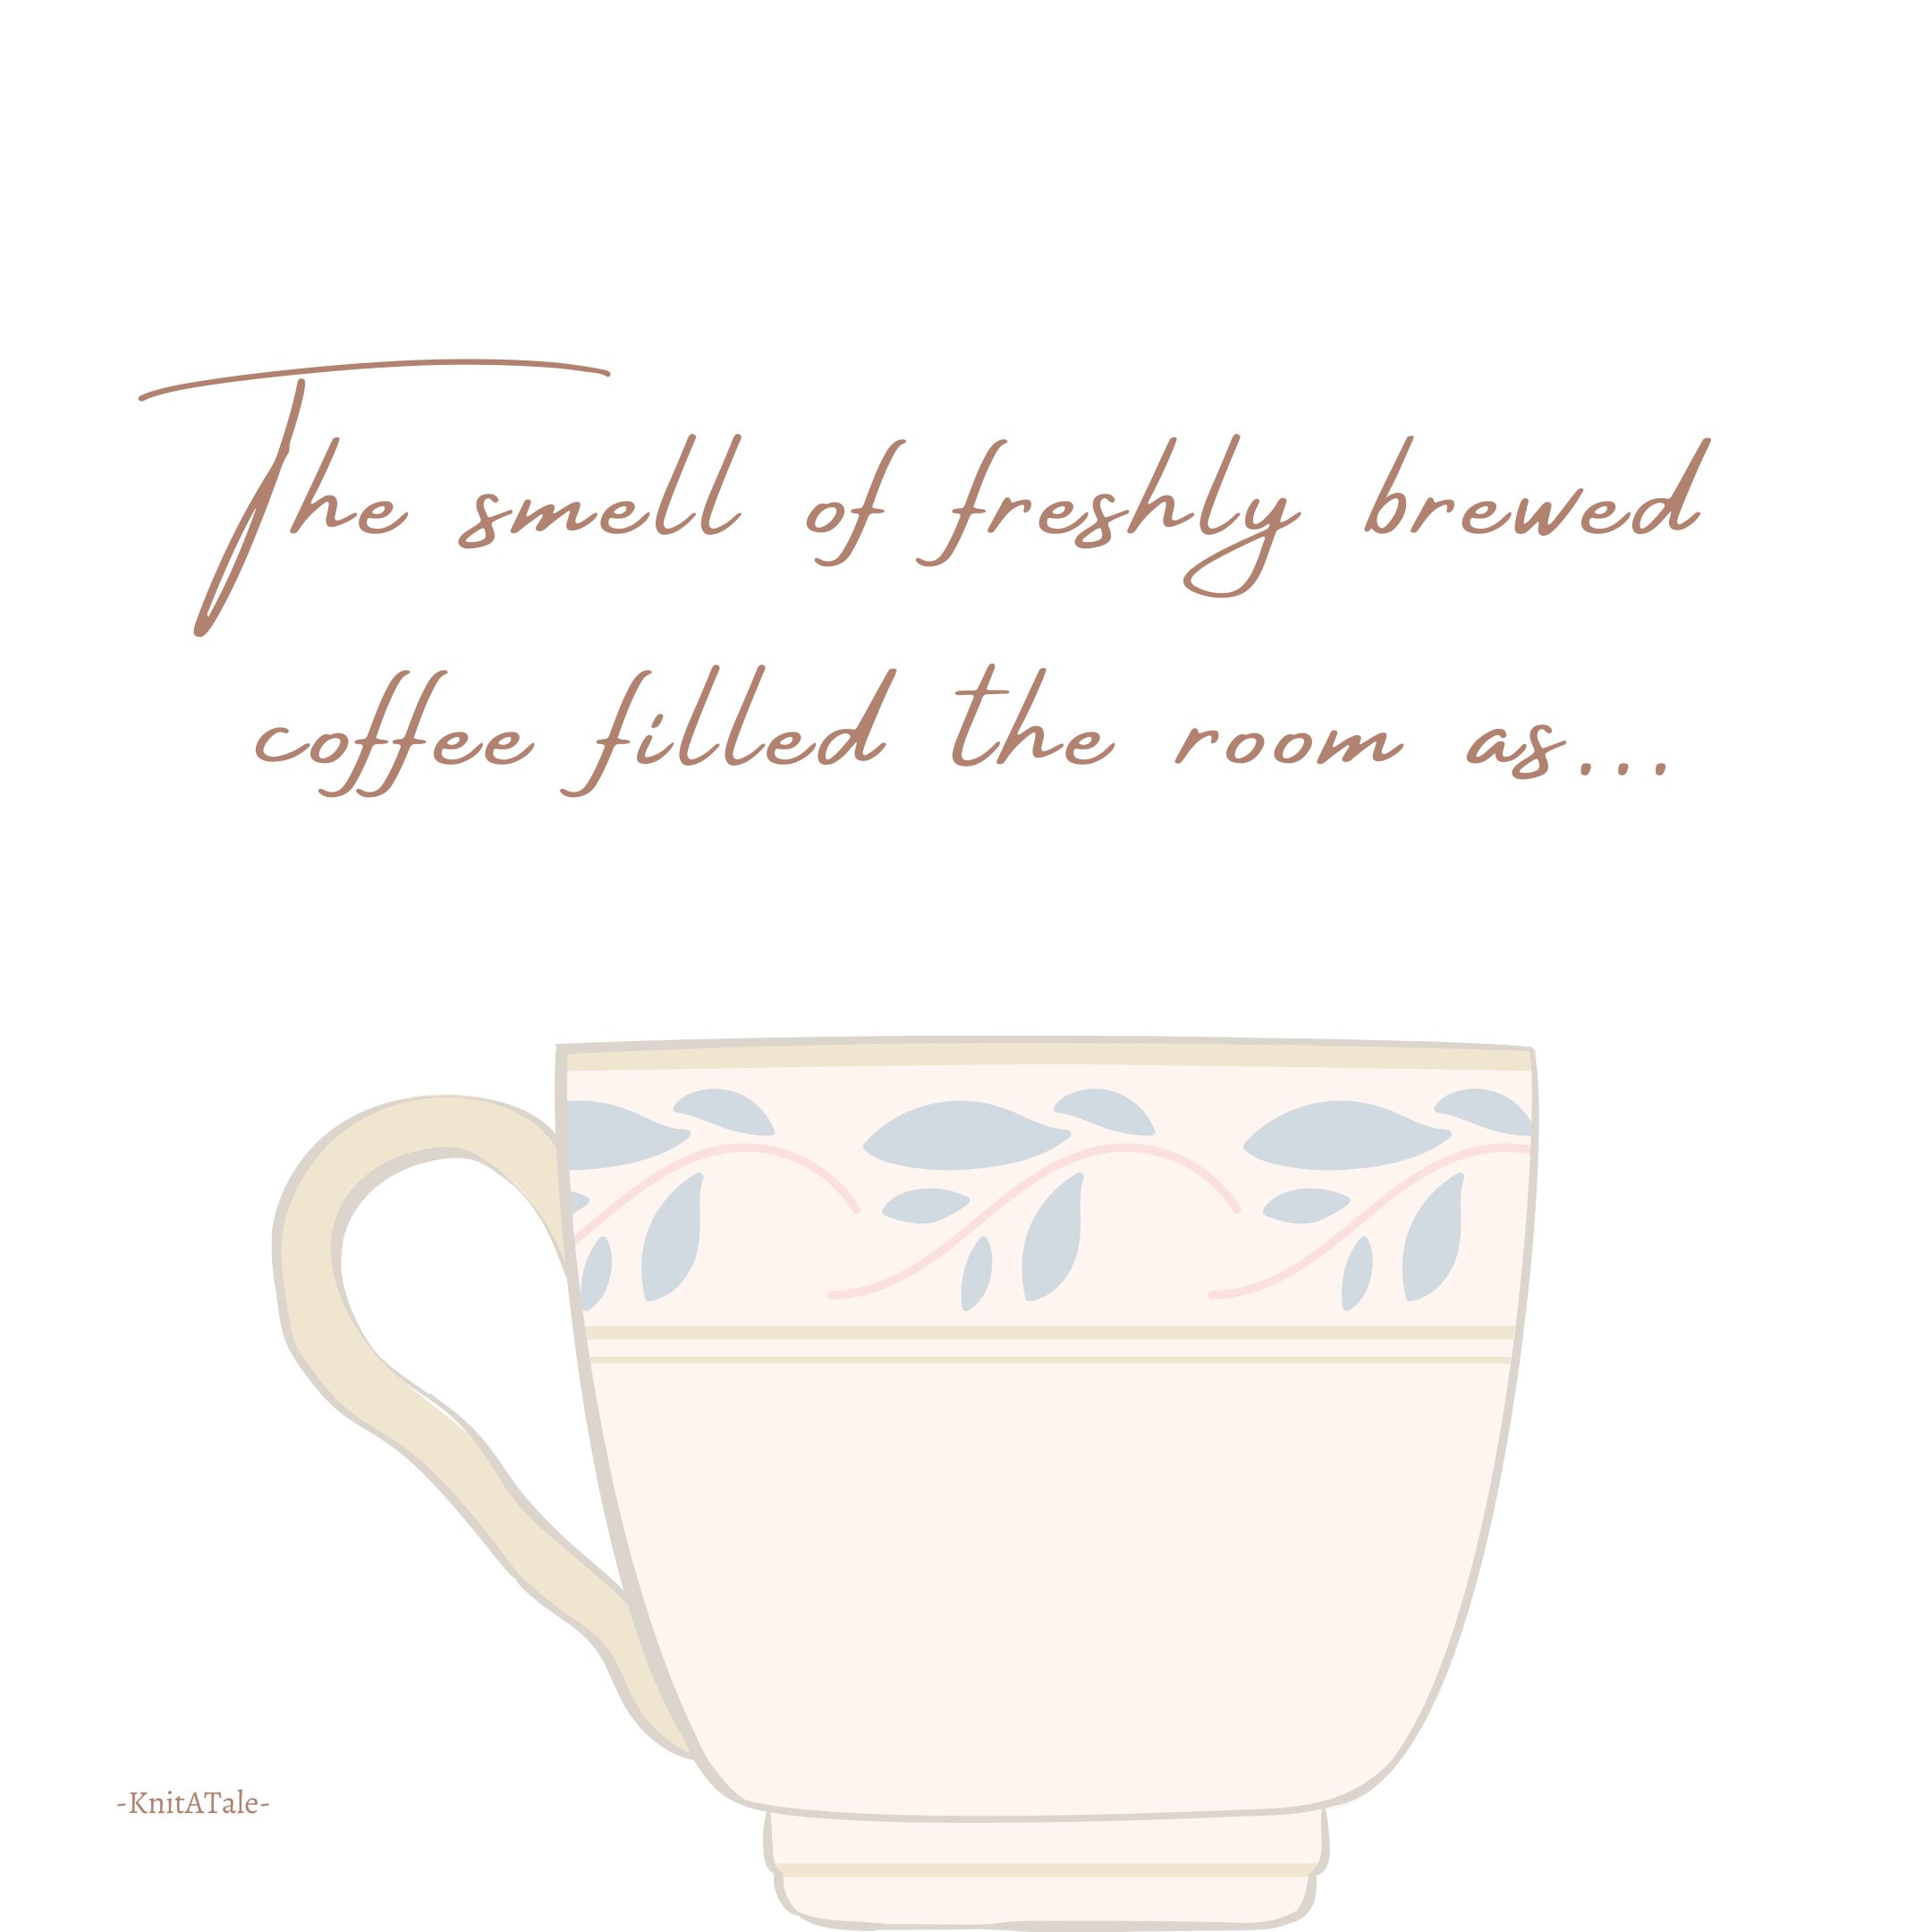 The Smell of a Freshly Brewed Coffee filled the Room